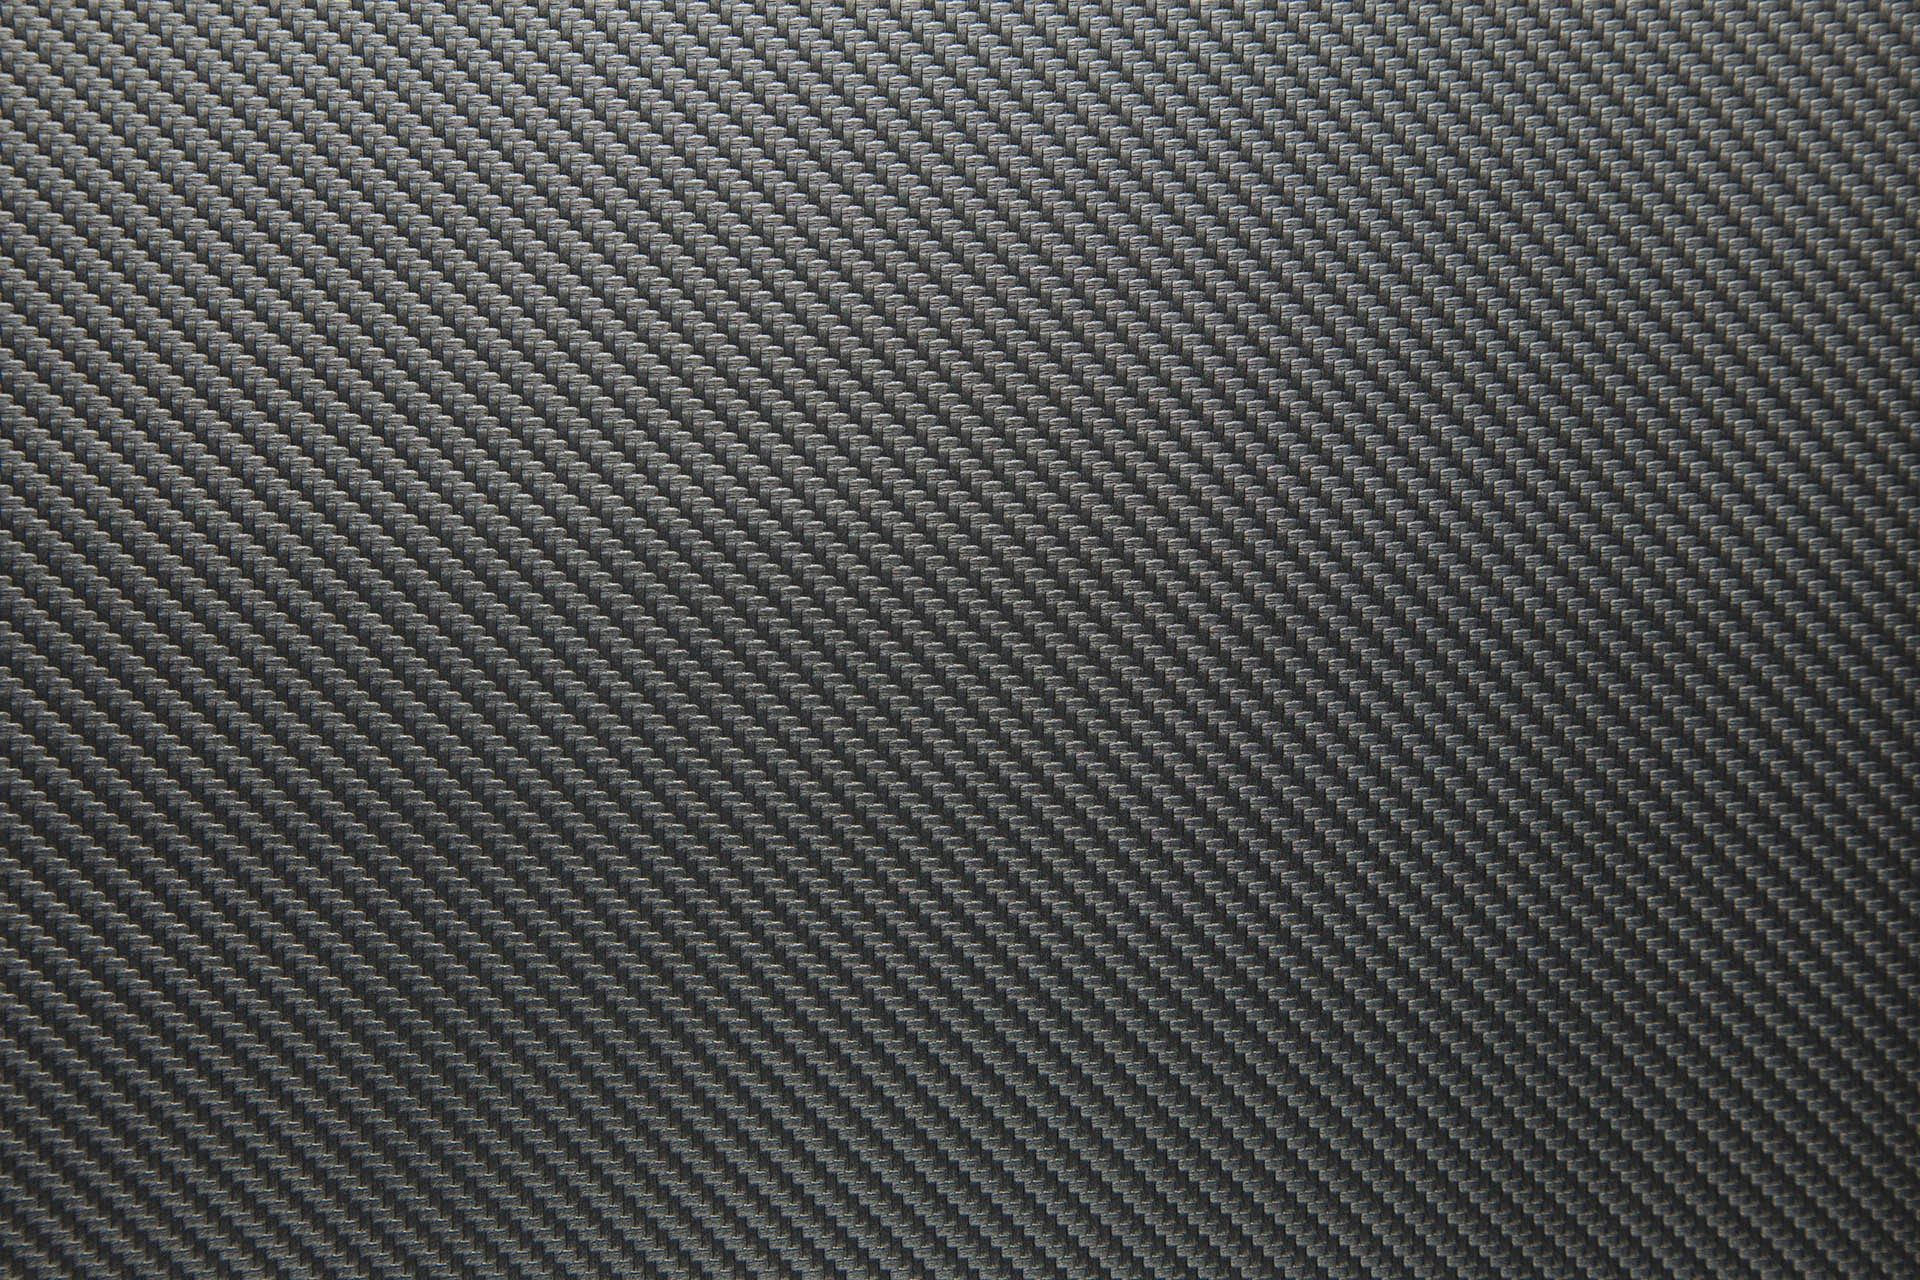 Carbon Wallpaper Iphone X Carbon Fiber Background 183 ① Download Free Hd Wallpapers For